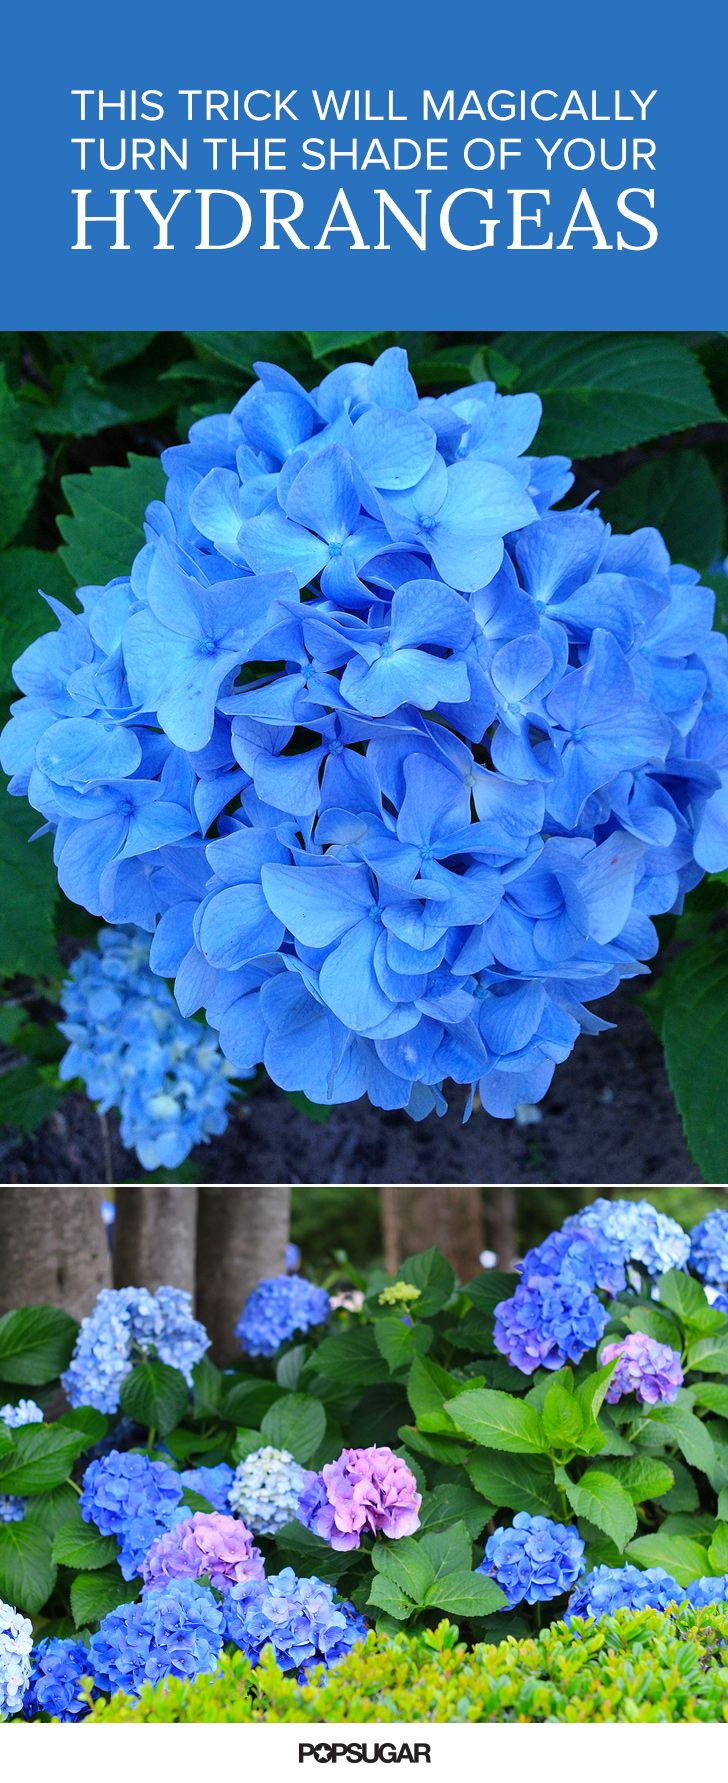 You can actually change the color of your hydrangeas — making them pink, blue, or ethereal shades of periwinkle — by following these simple steps